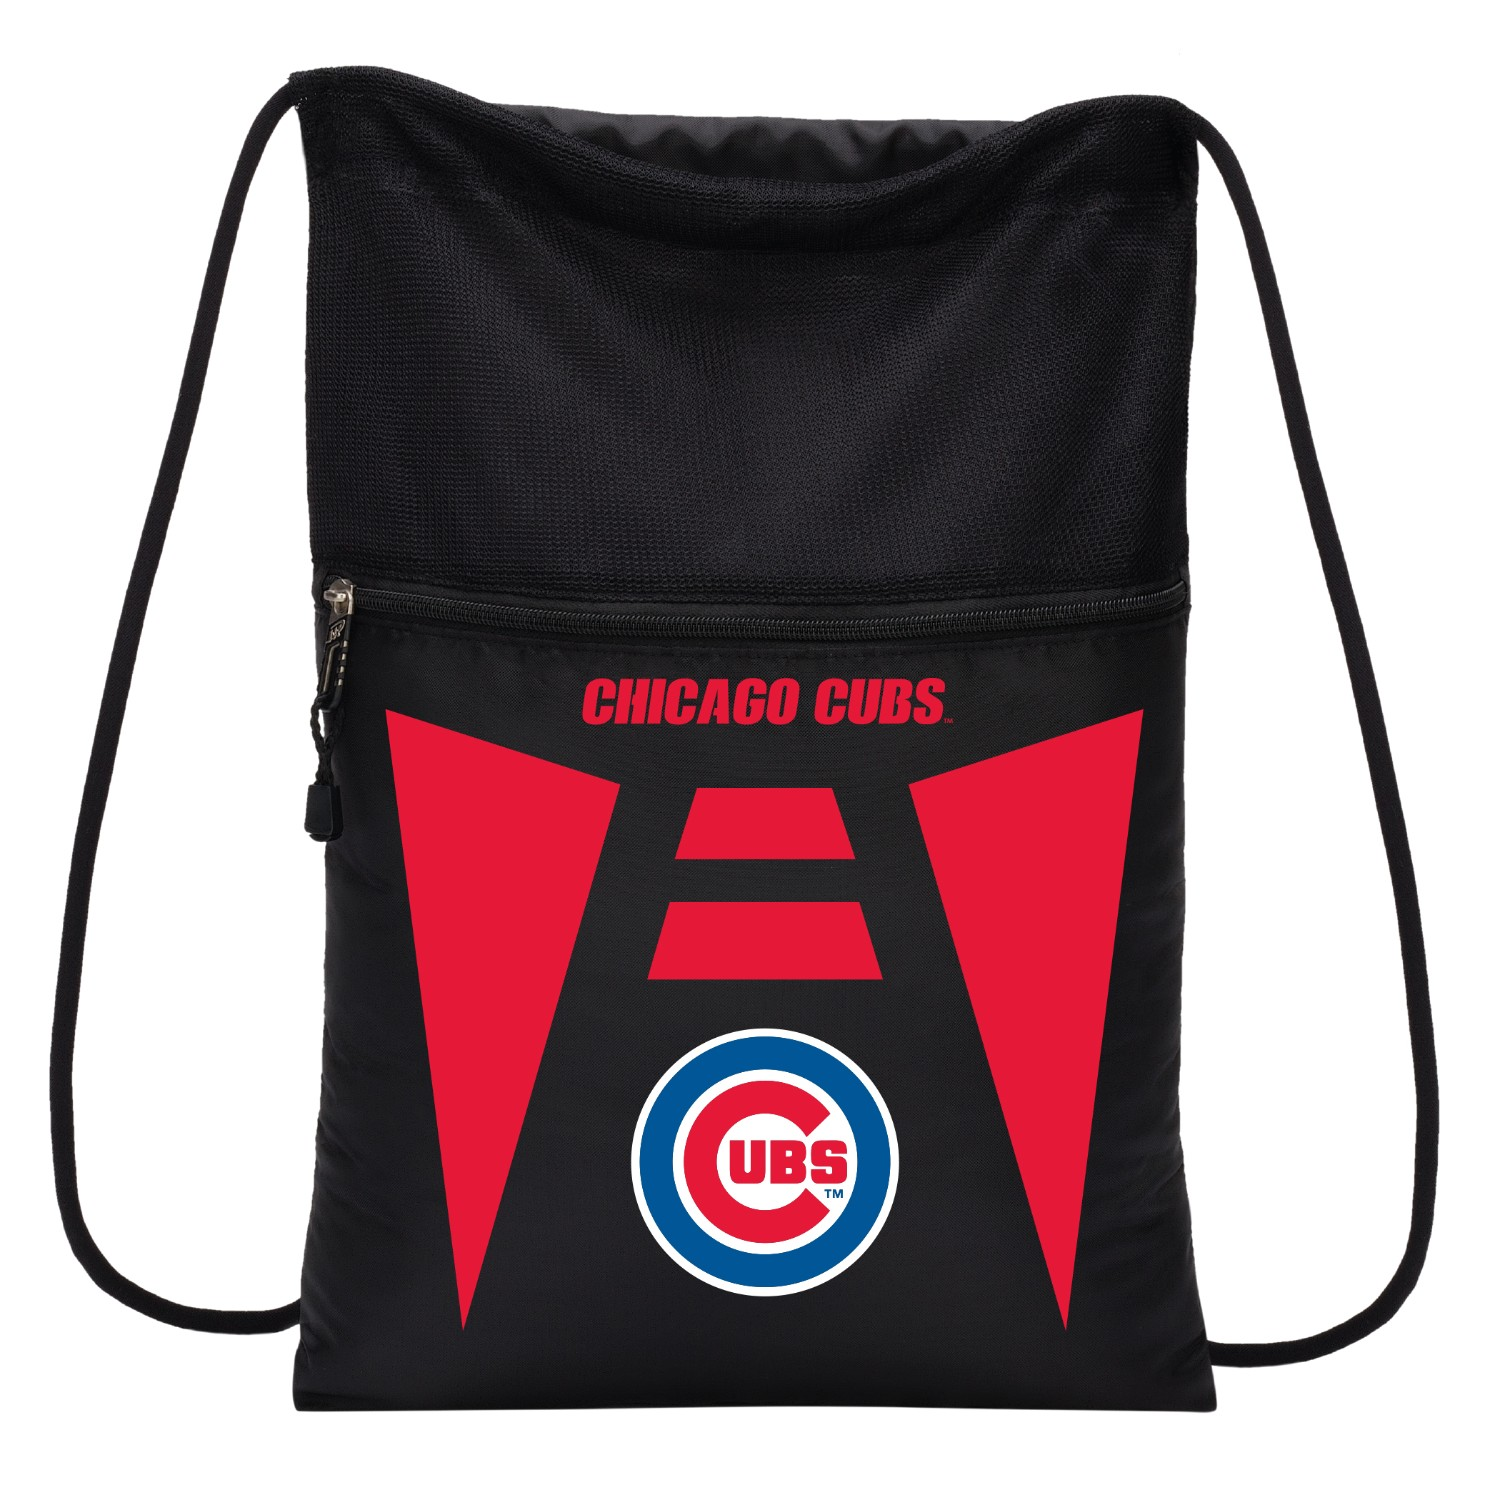 Chicago Cubs Team Tech Backsack